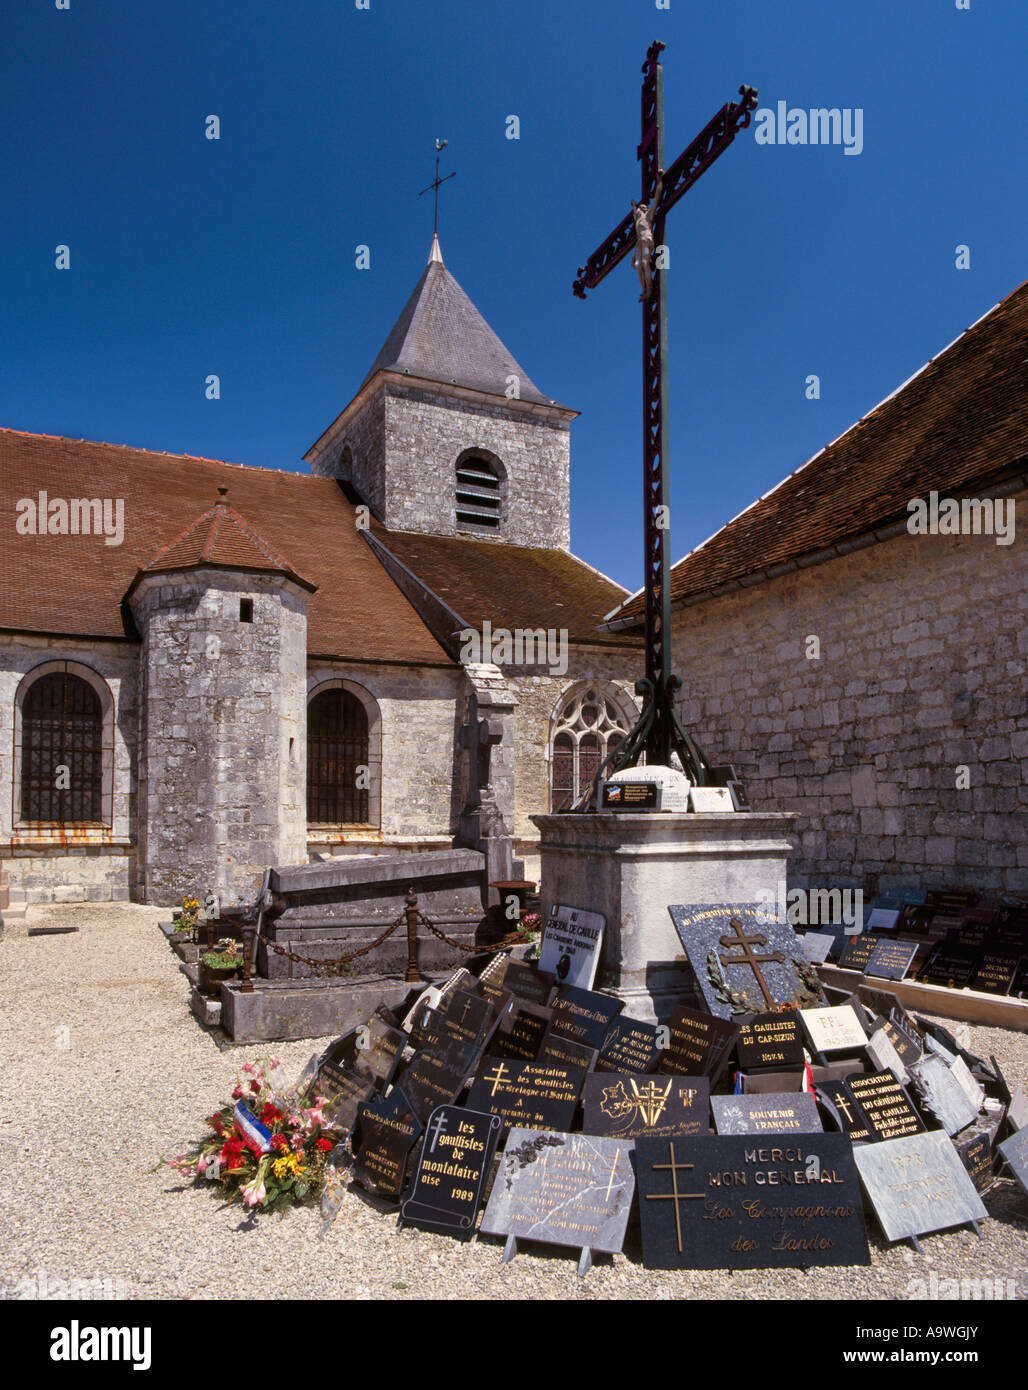 Grave Of Charles De Gaulle In Churchyard At Colombey Les Deux Eglises Stock Photo Alamy